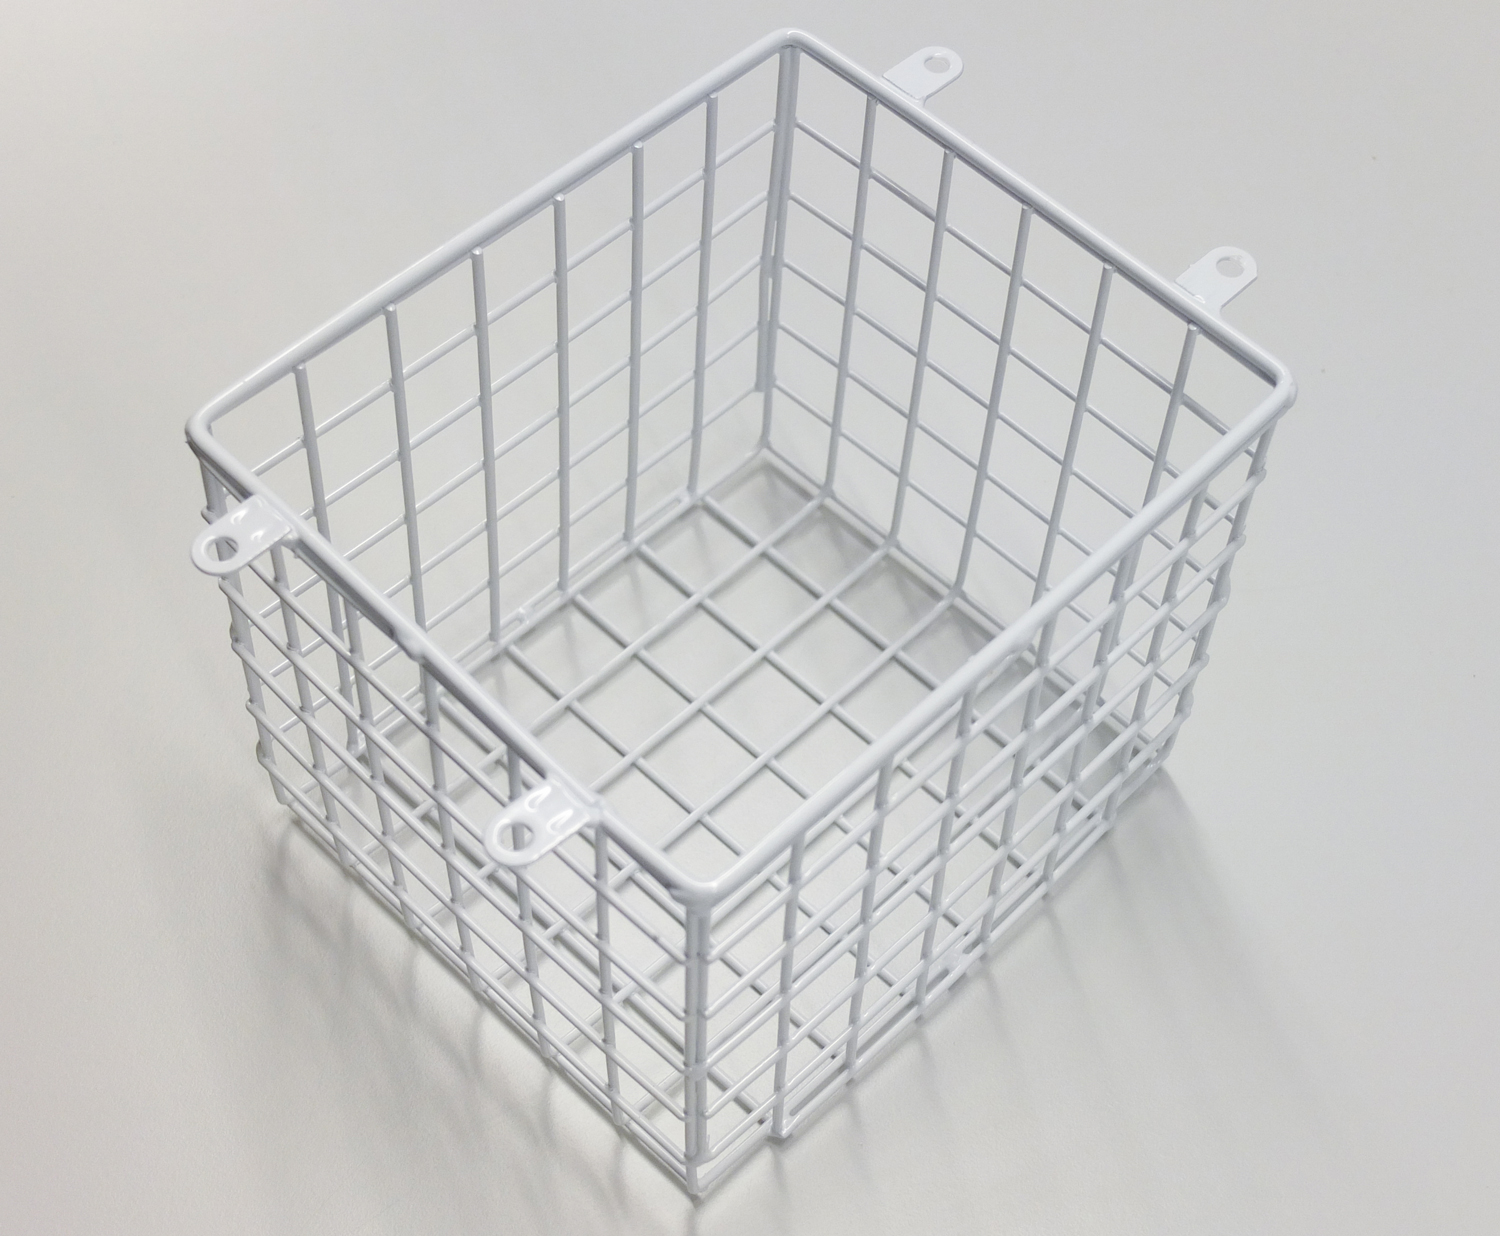 Light Cctv Sensor Guard Security Cages Direct